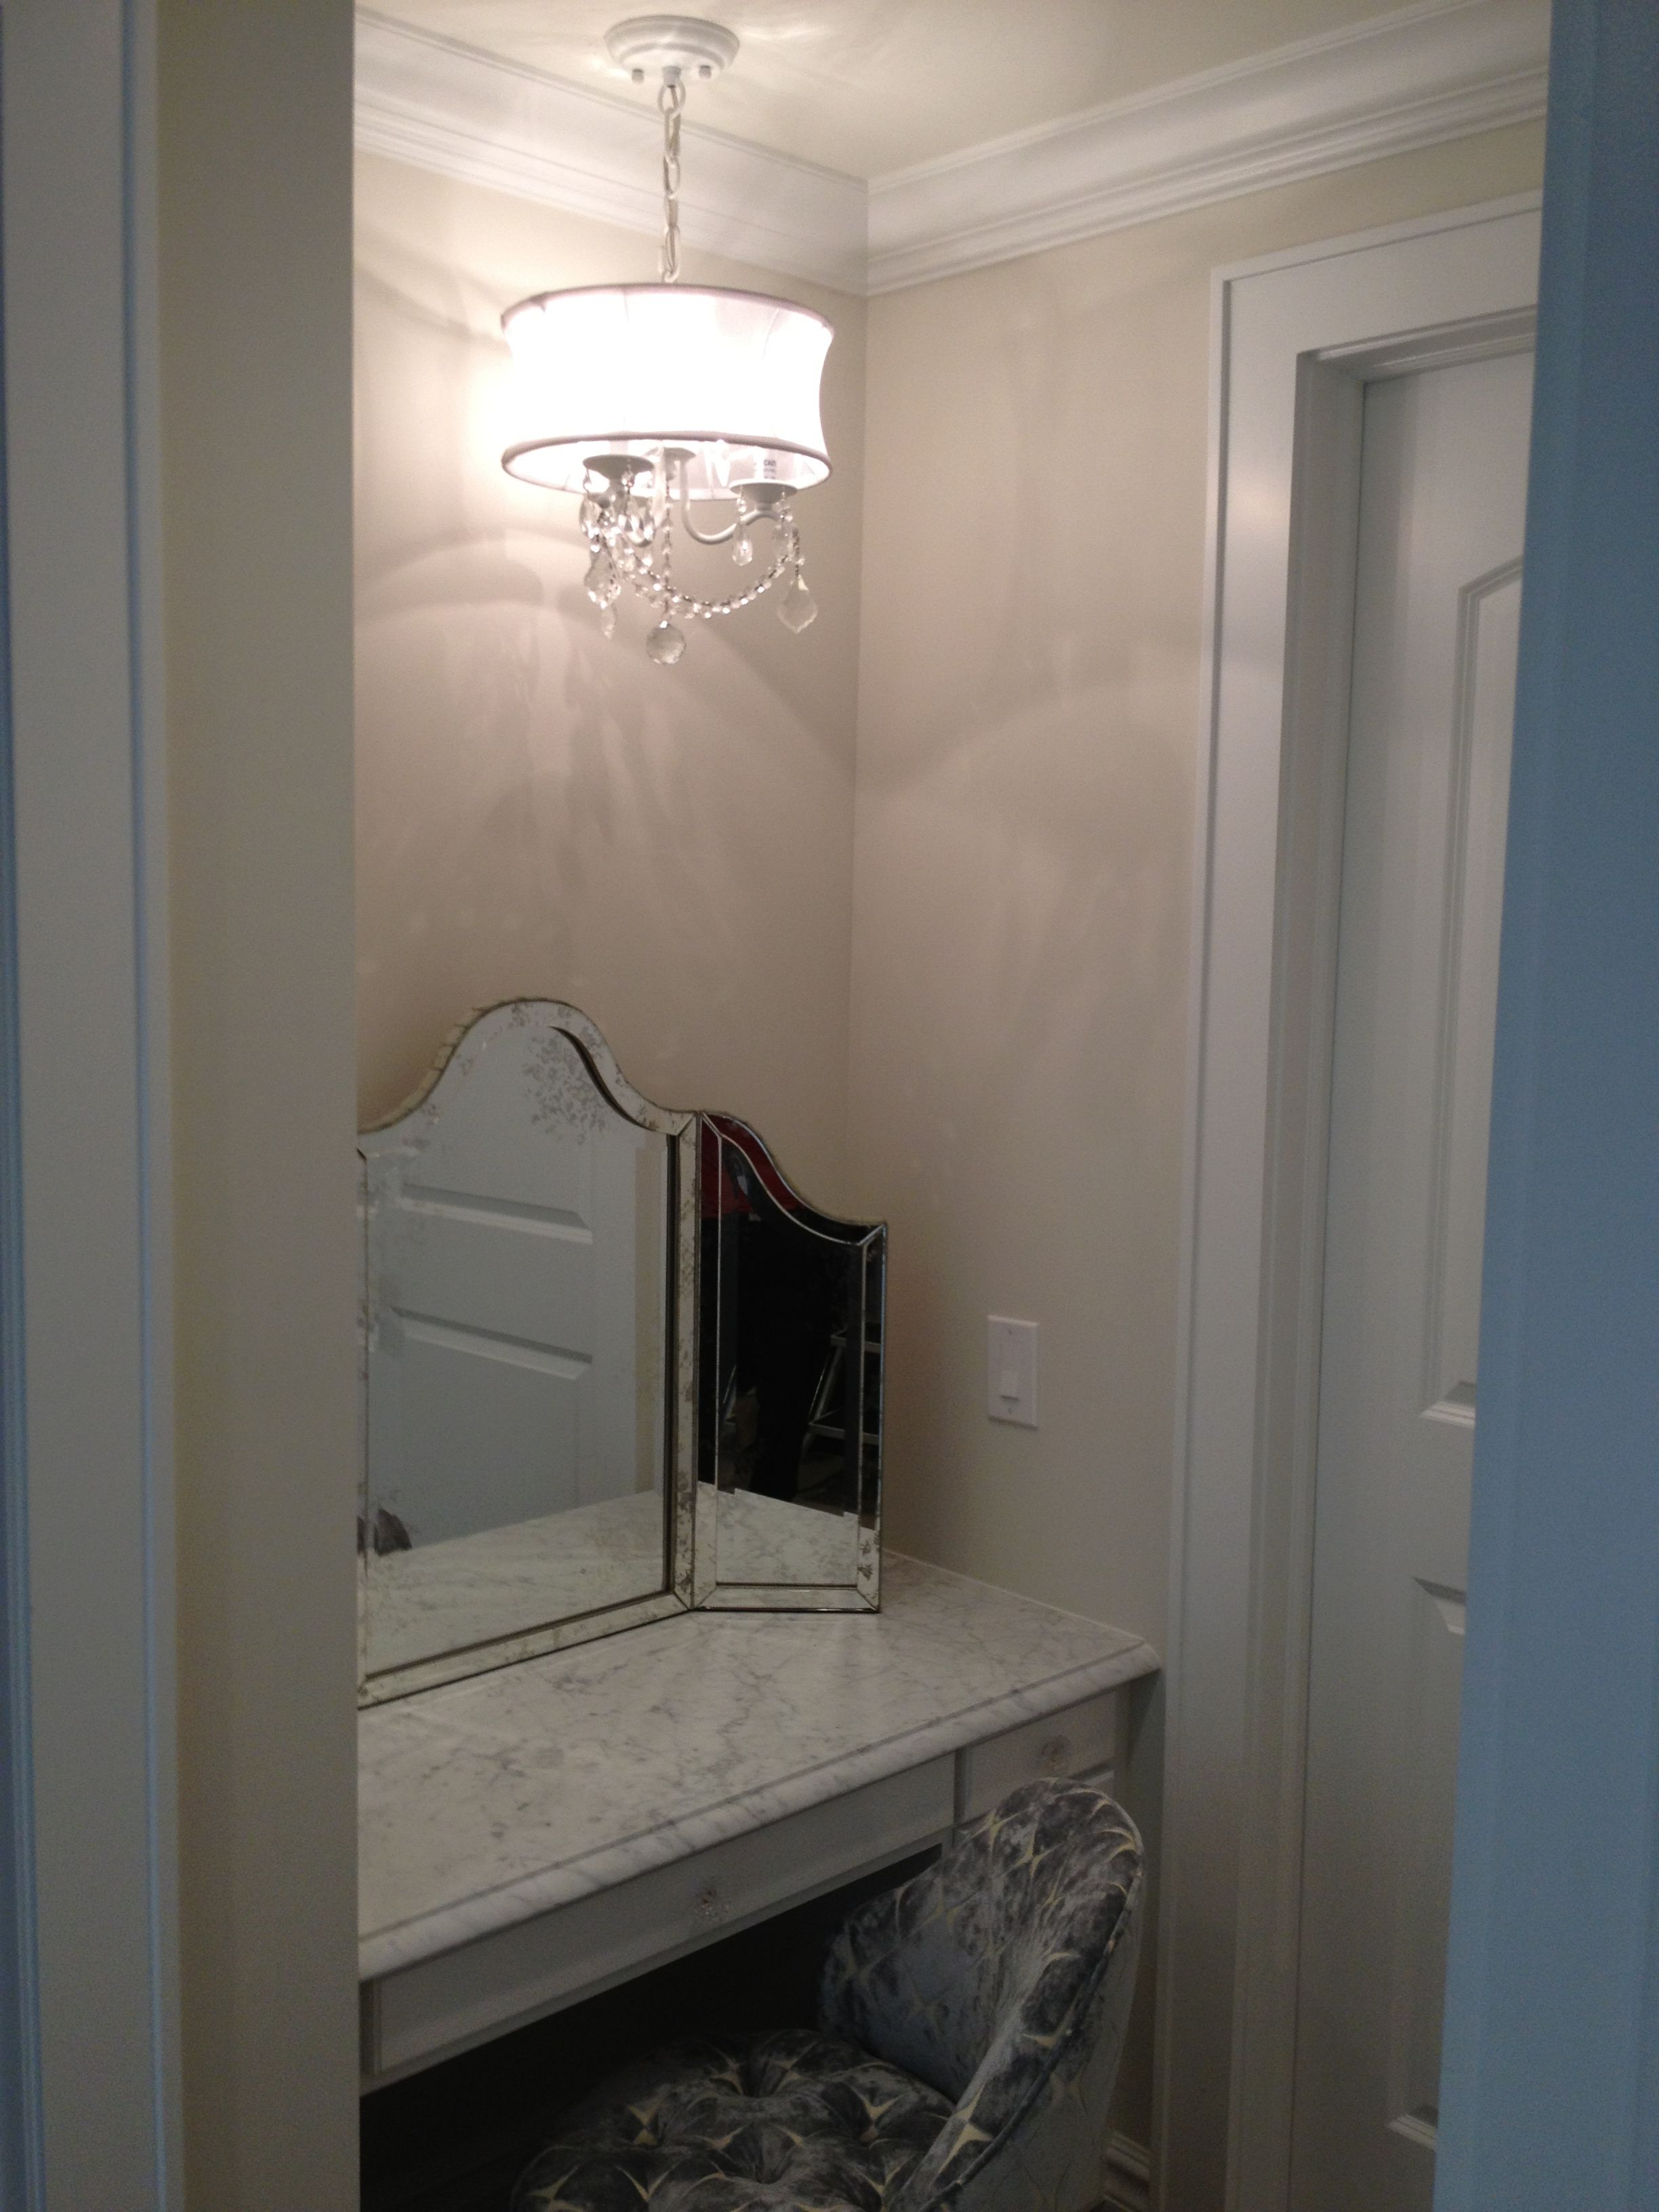 Here is the finished product!  Custom Vanity Area with antique mirror and custom vanity chair. Pretty chandelier above